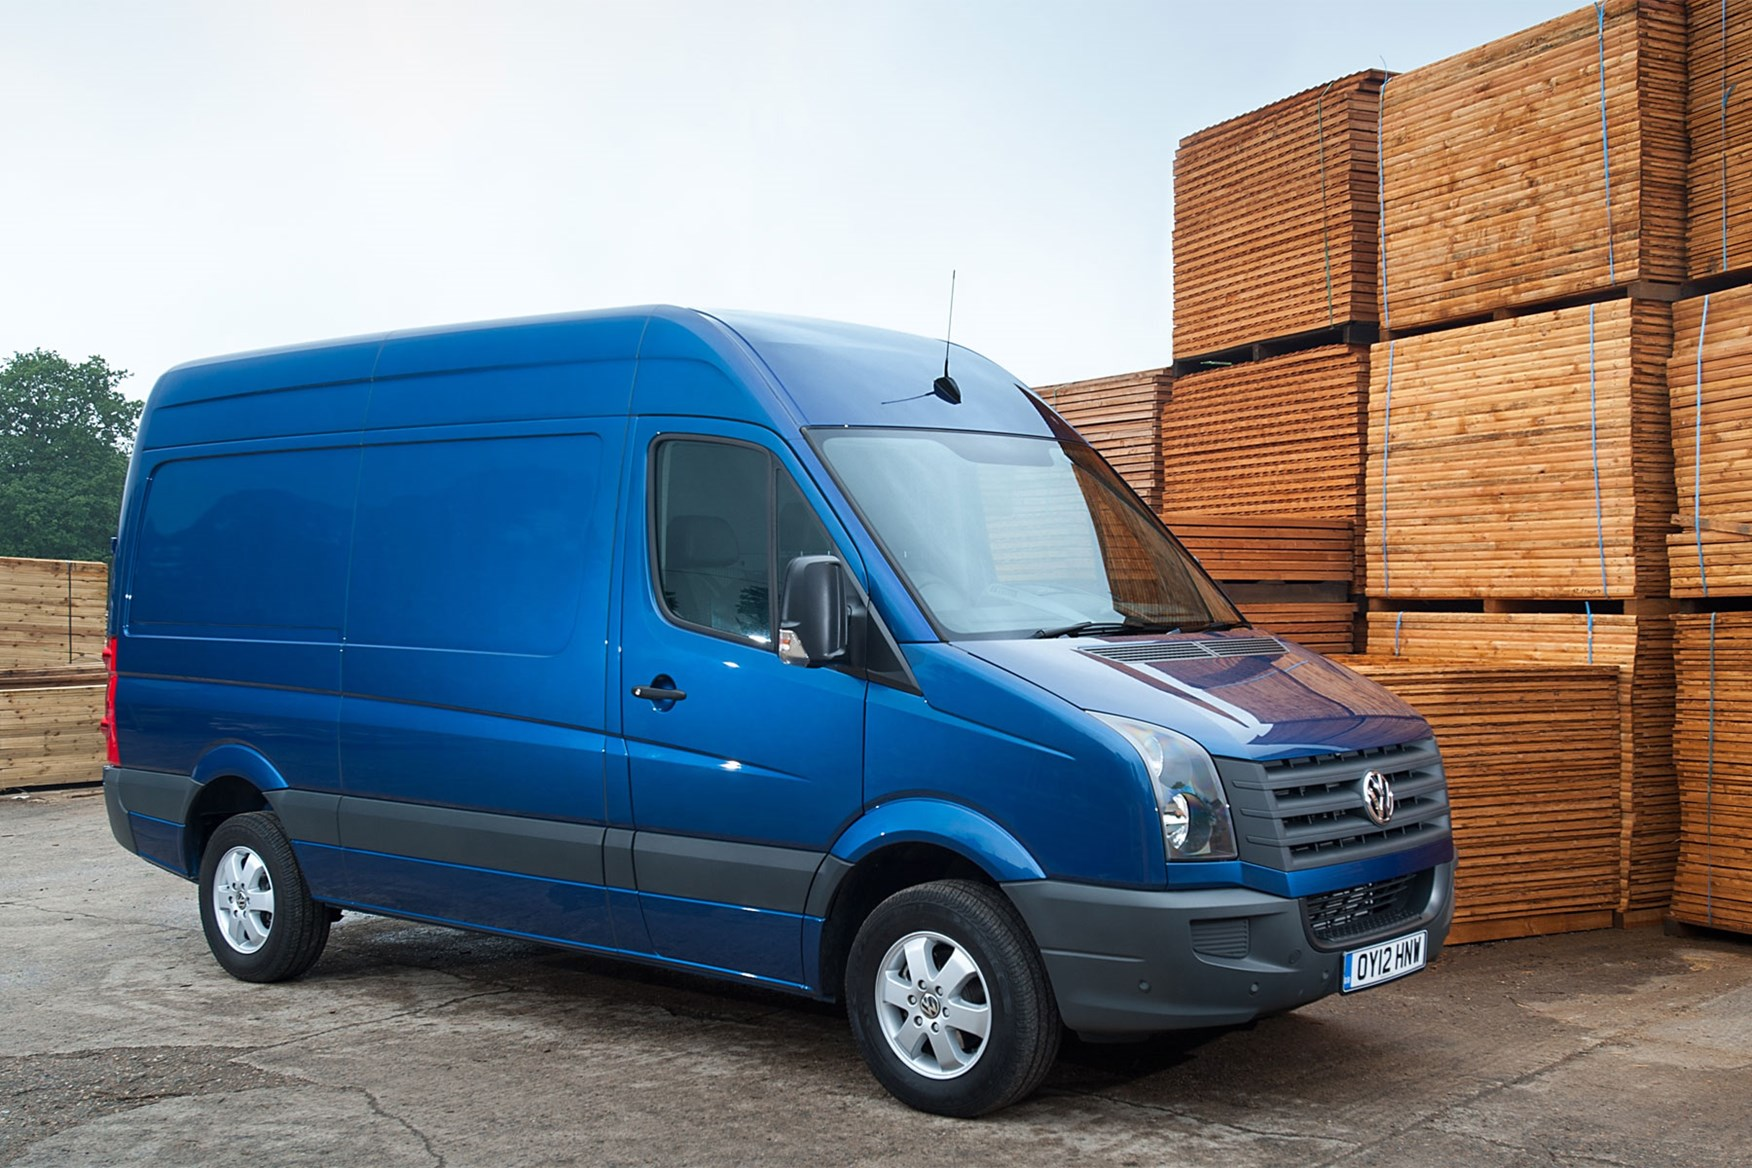 VW Crafter (2011-2016) front view